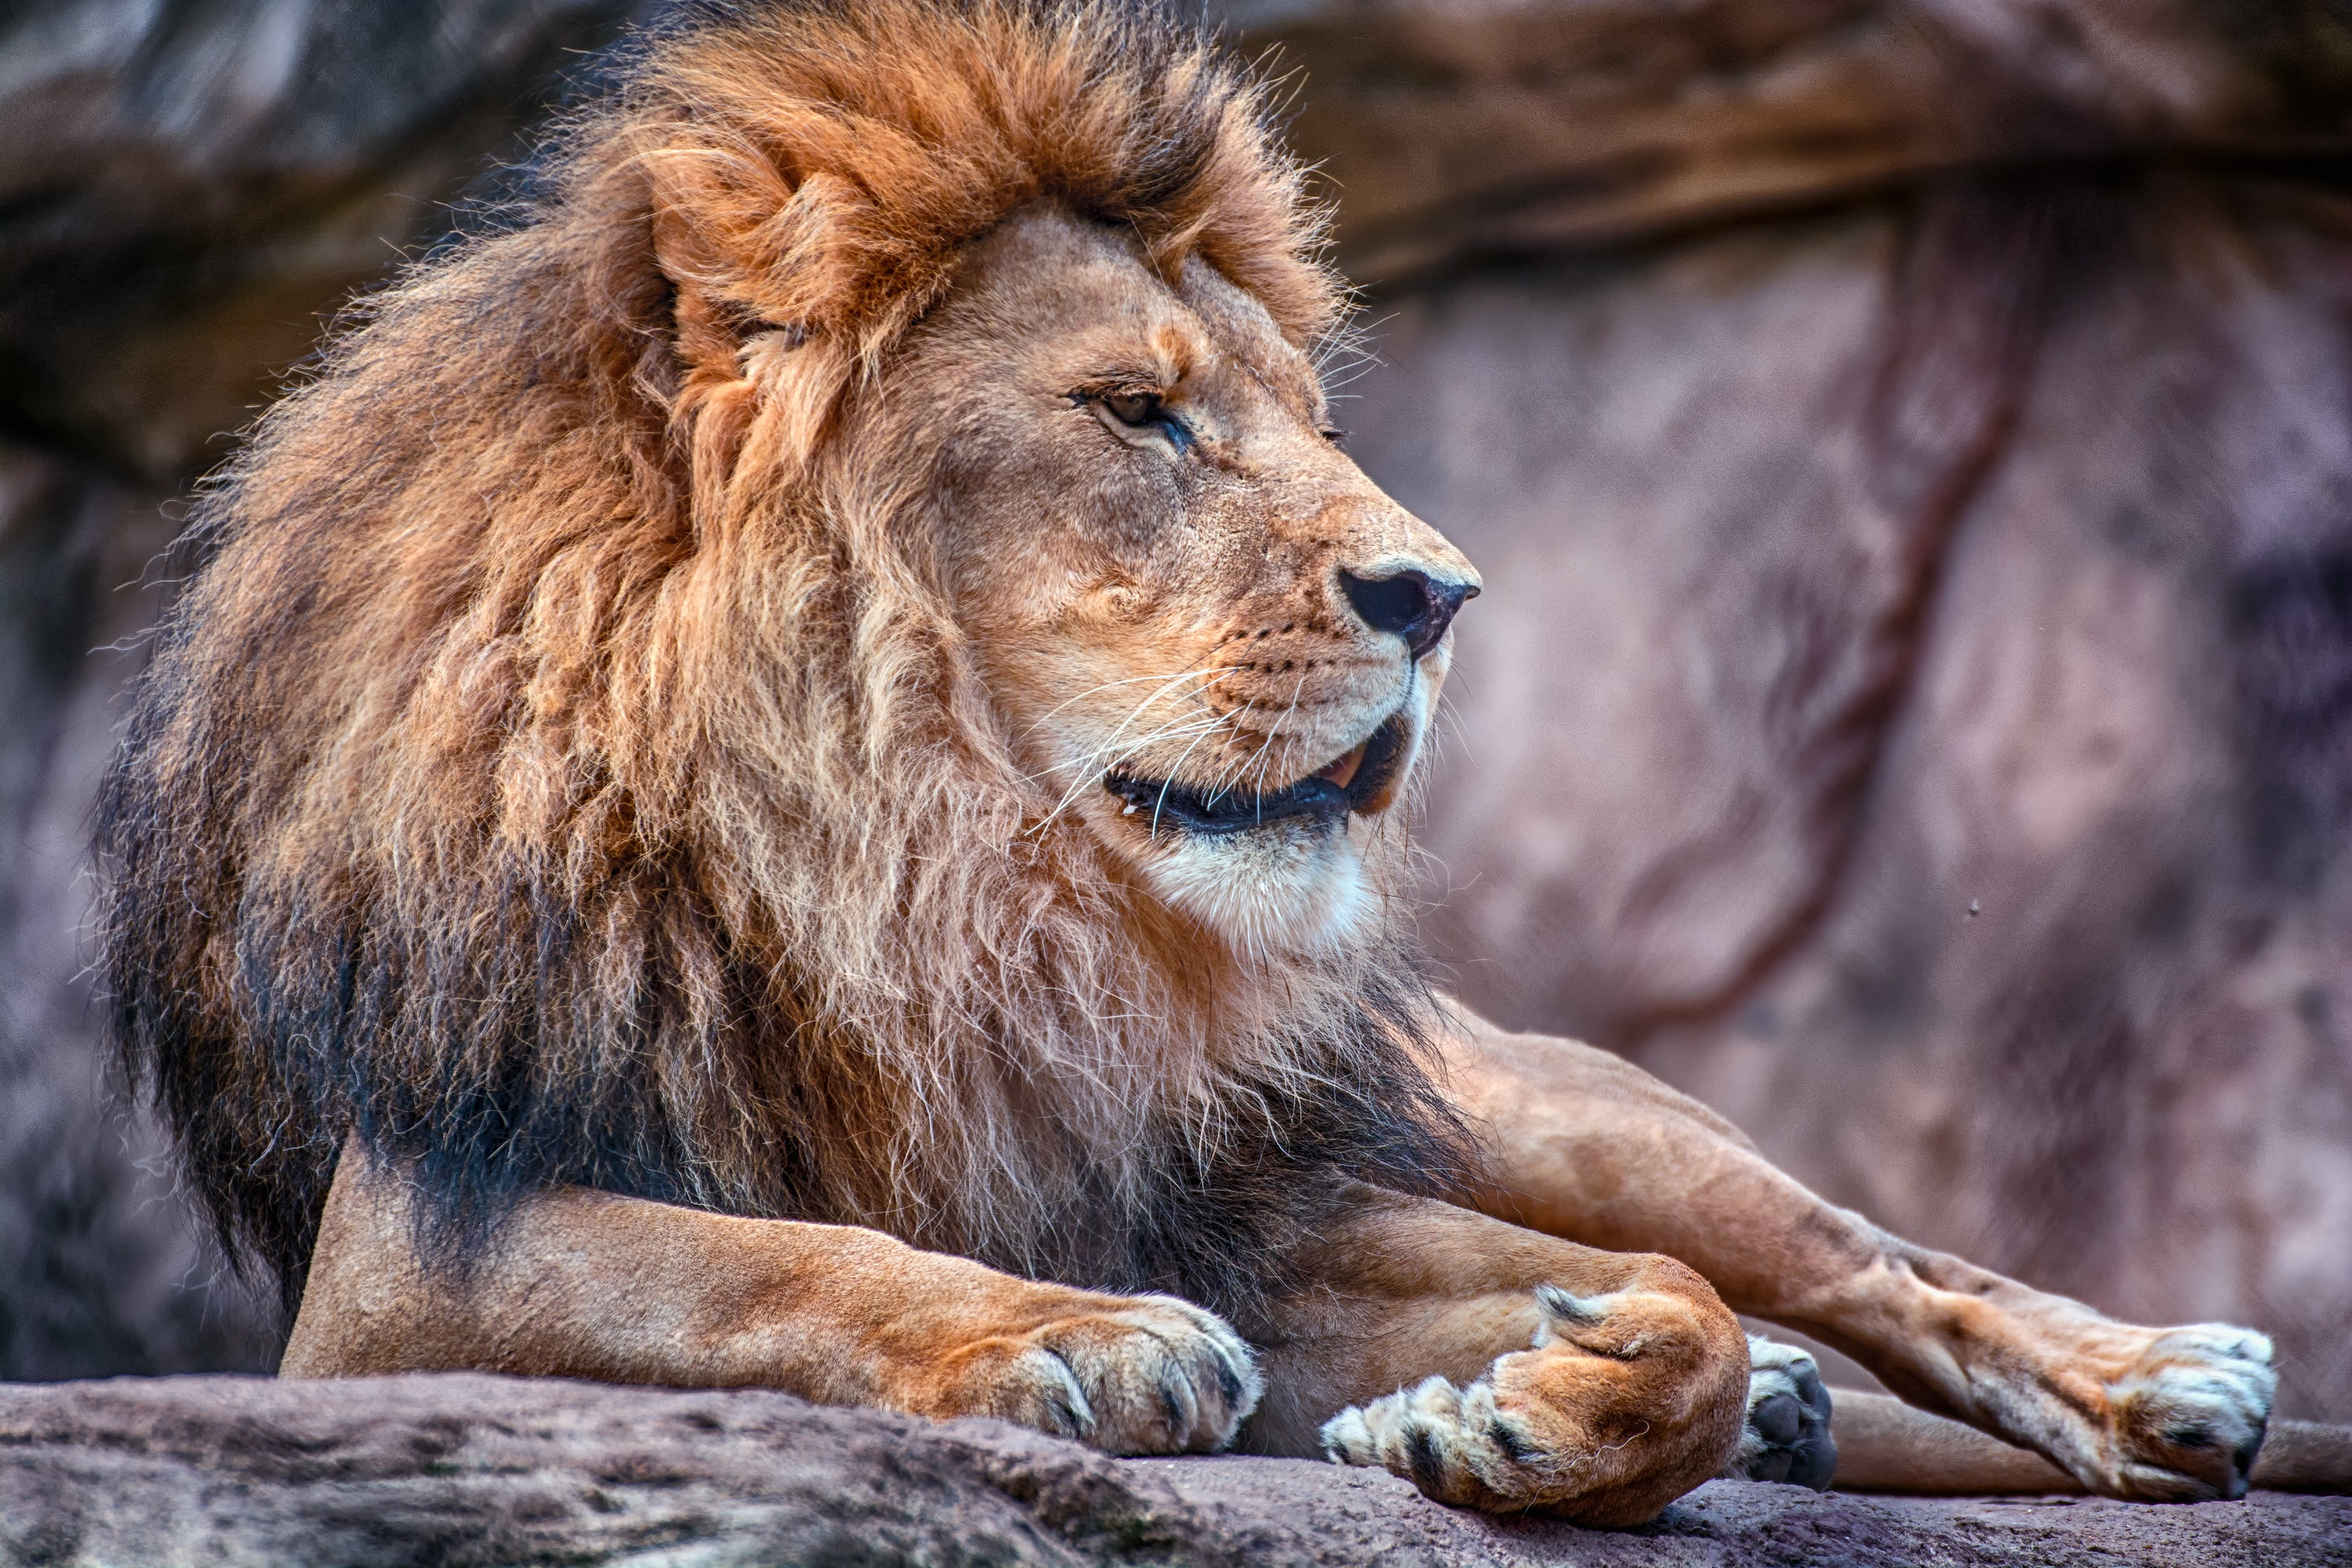 140312 download wallpaper Animals, Lion, Mane, Predator, Wild Cat, Wildcat screensavers and pictures for free